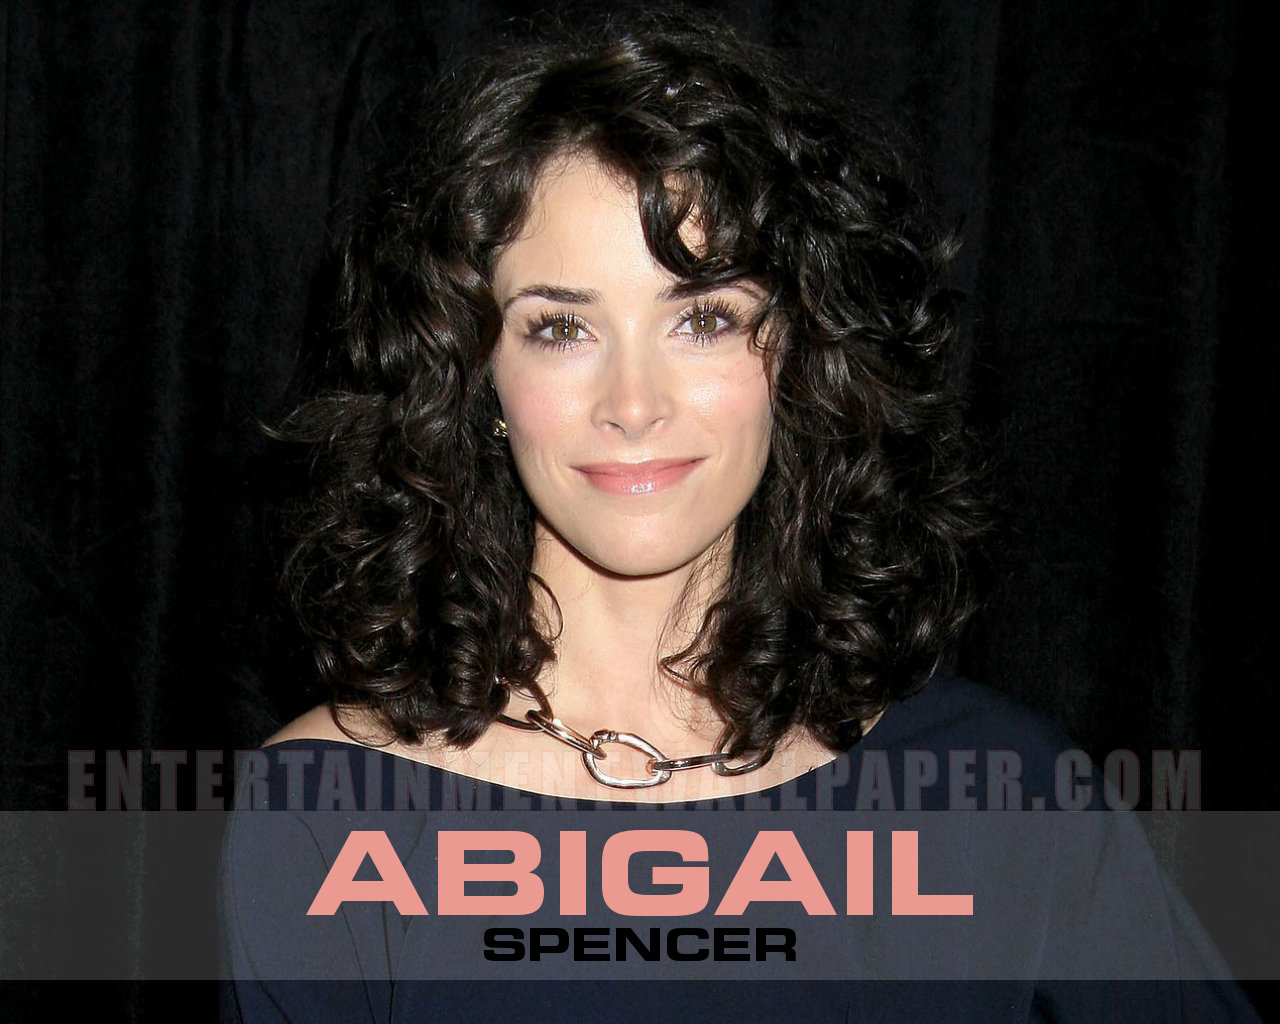 abigail spencer video